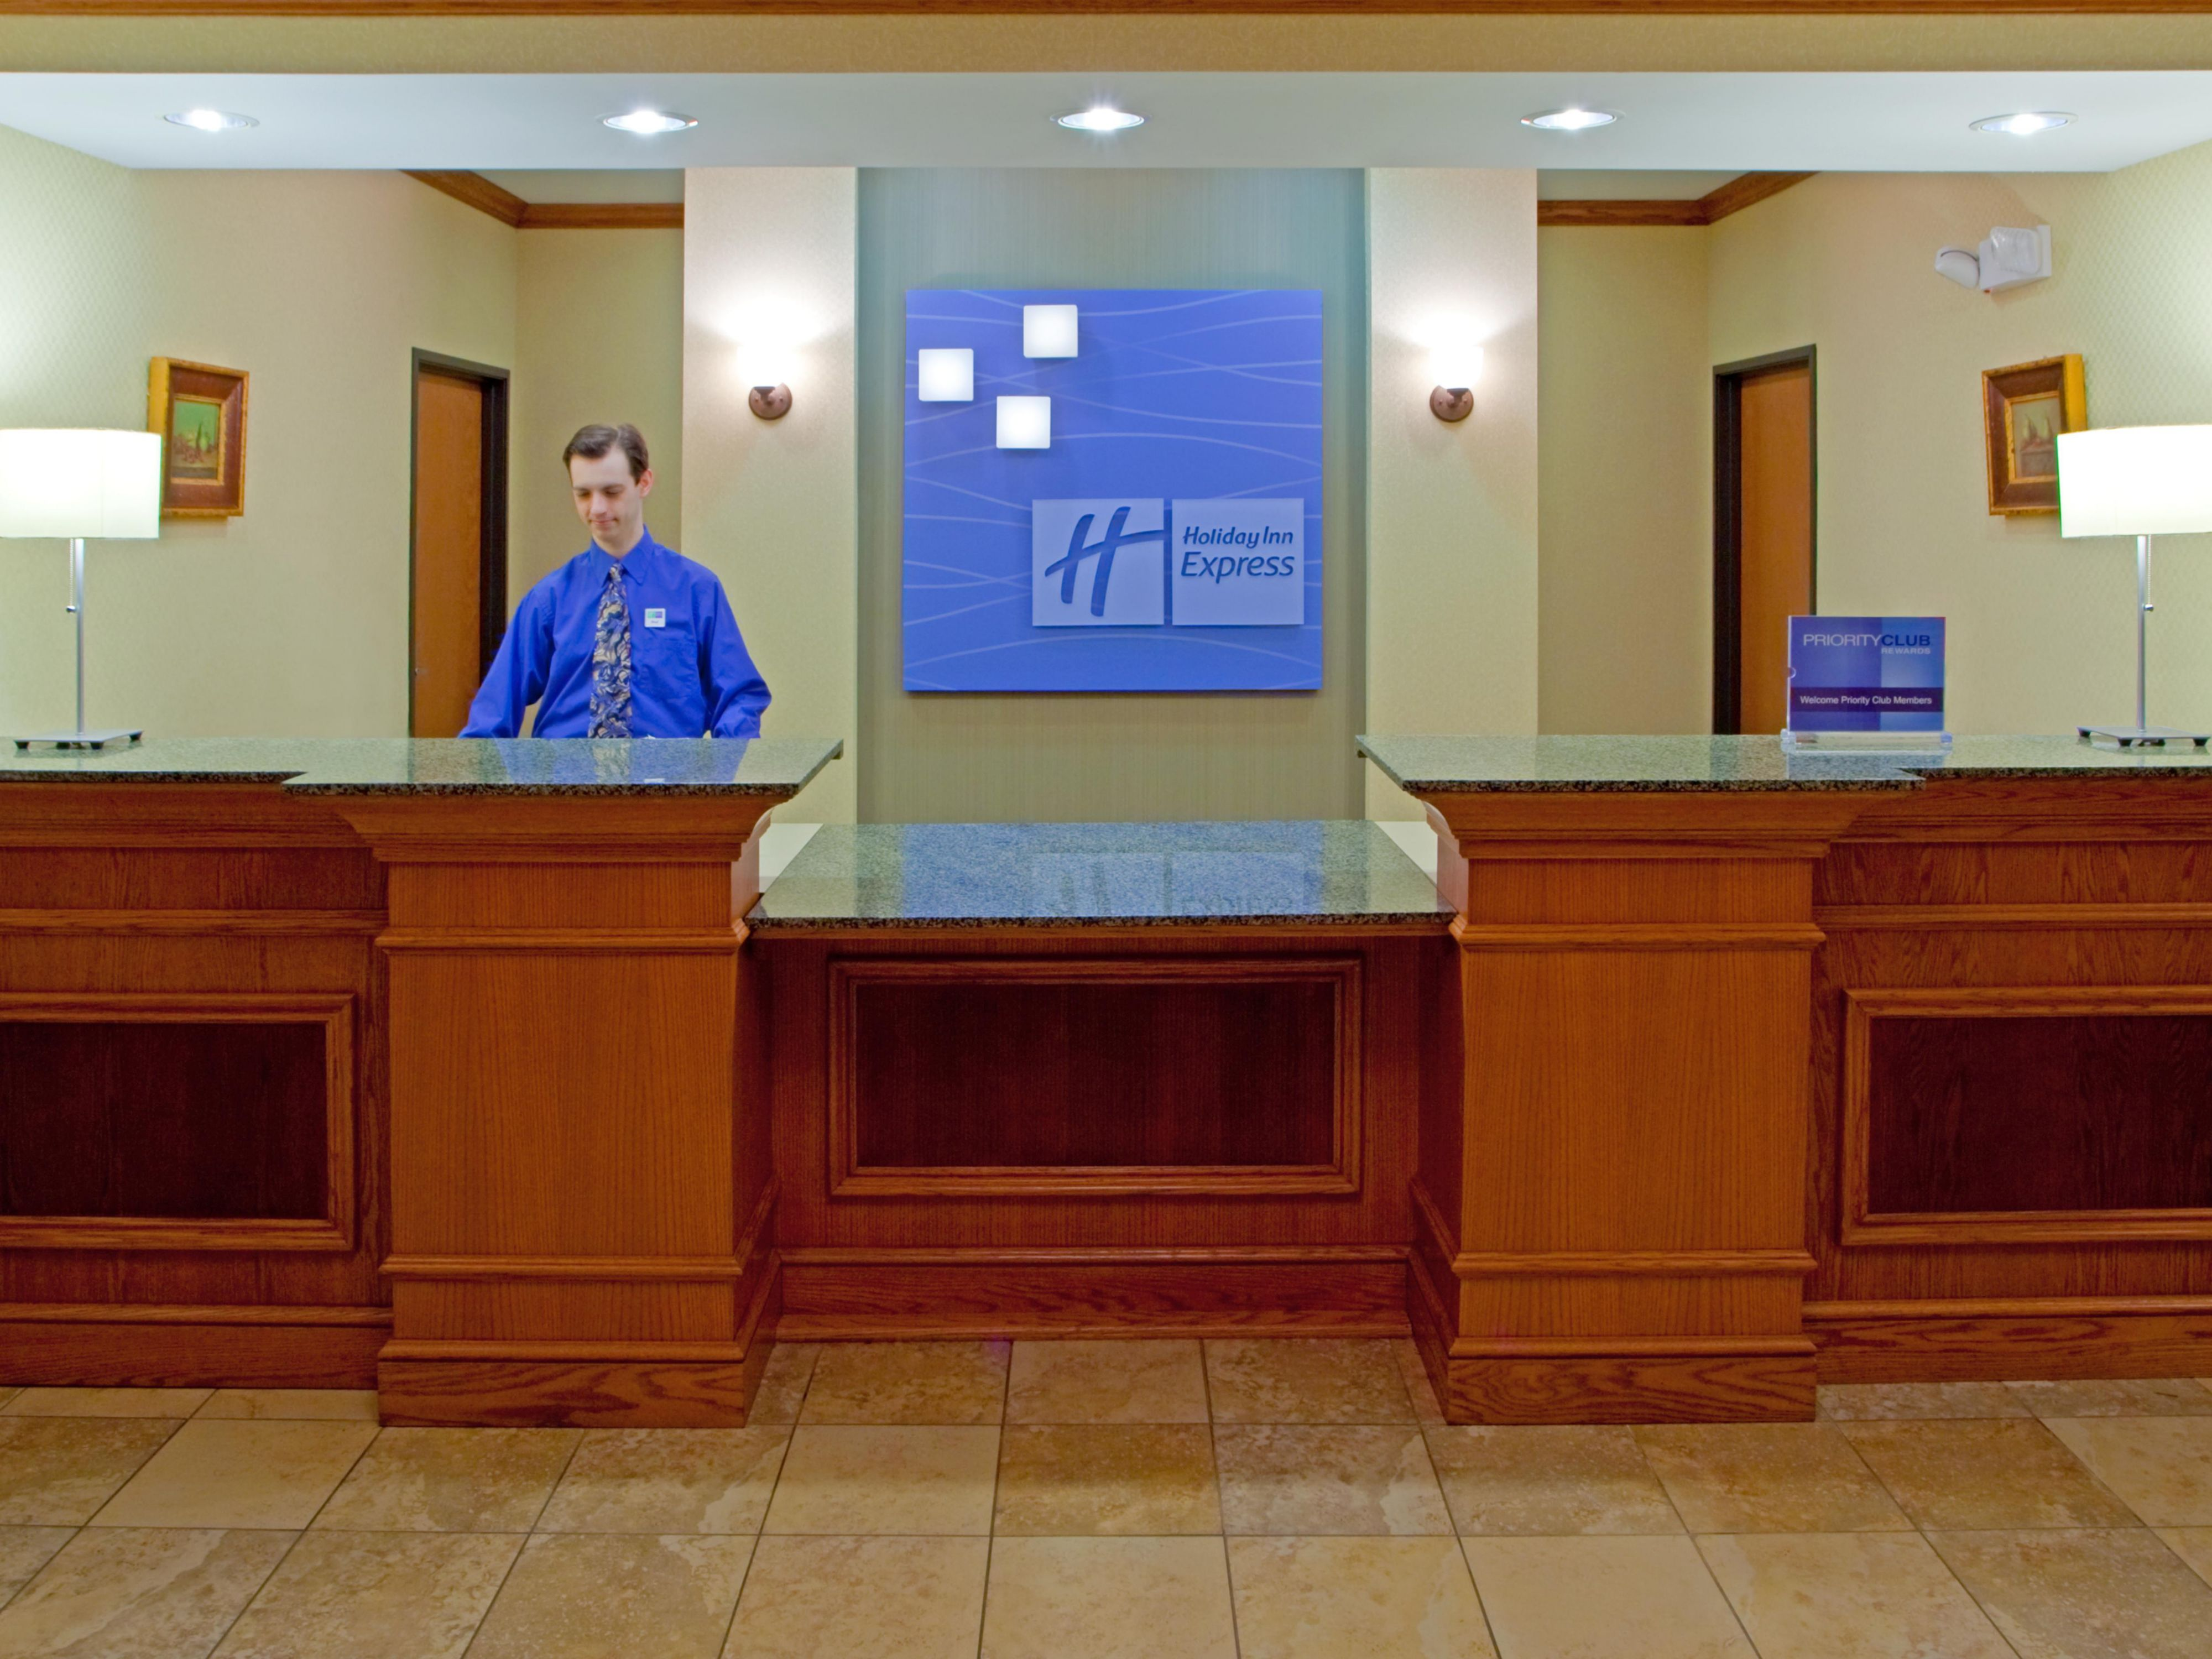 Have a friendly check in with our great Front Desk